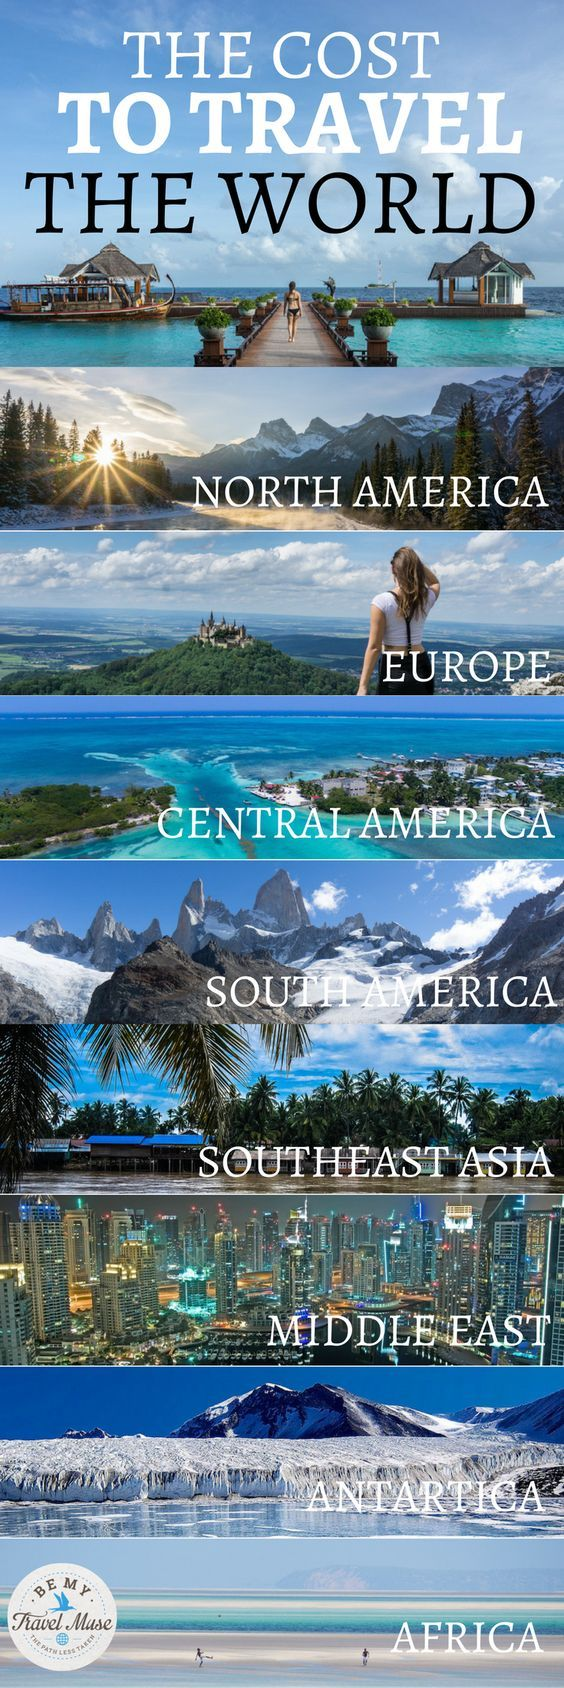 How much does it cost to travel to the world? This guide budgets out every single region and most countries in the world for daily costs and how to save. Aergo Wanderlust Approved!